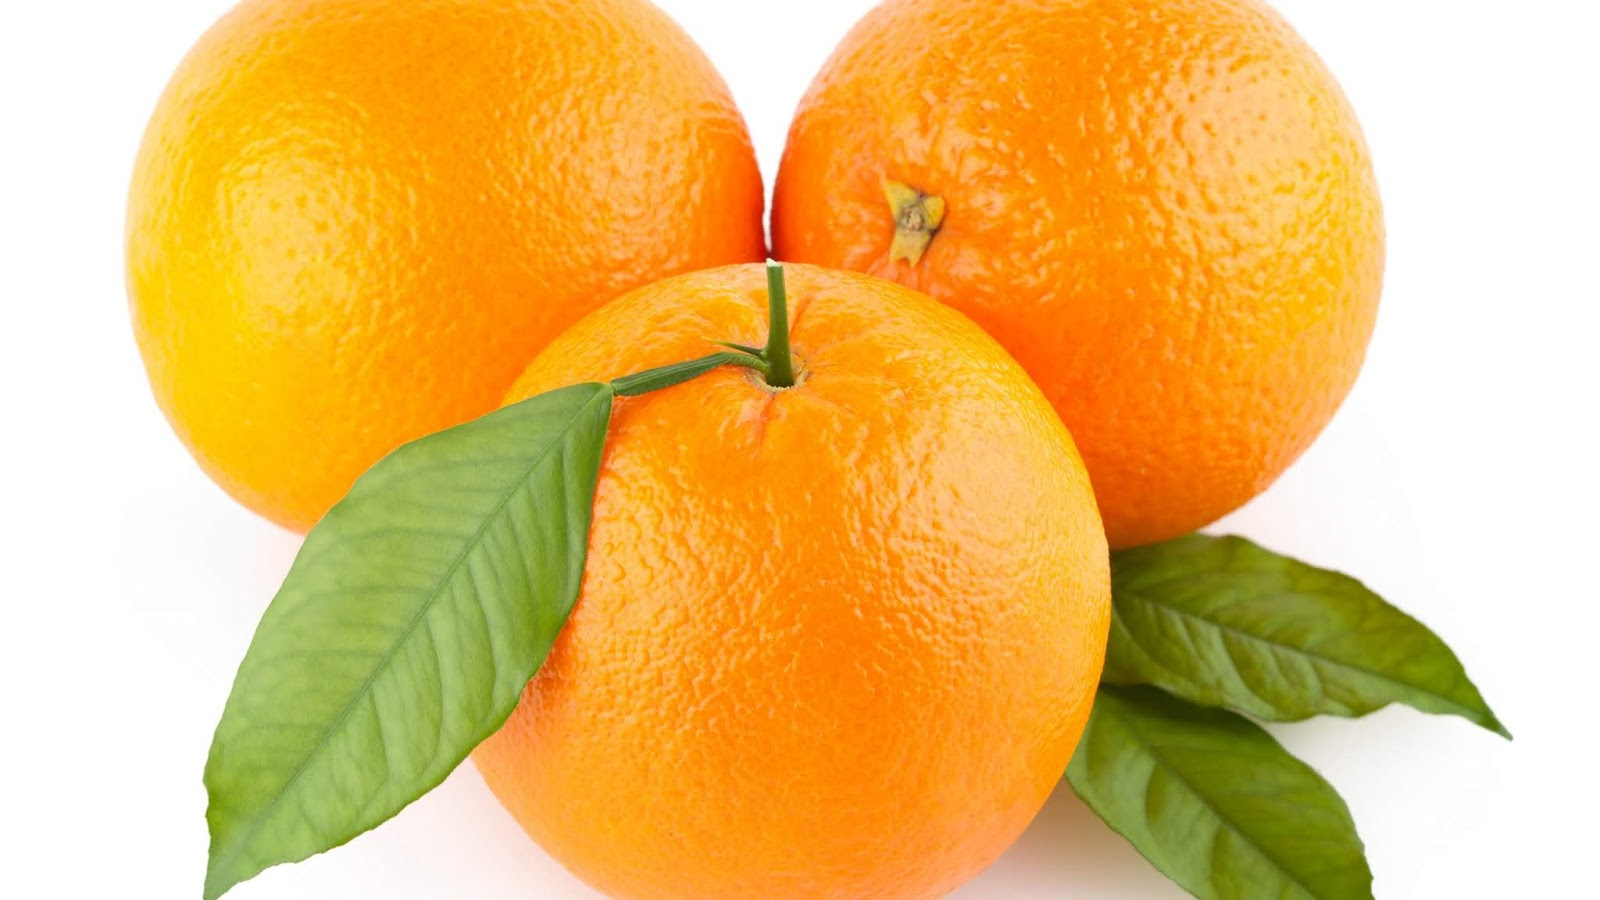 Download 34 Orange Fruit Wallpapers The Best HD 4K For Desktop Mobiles Tablets In High Quality Widescreen Ultra 5K 8K SUHD